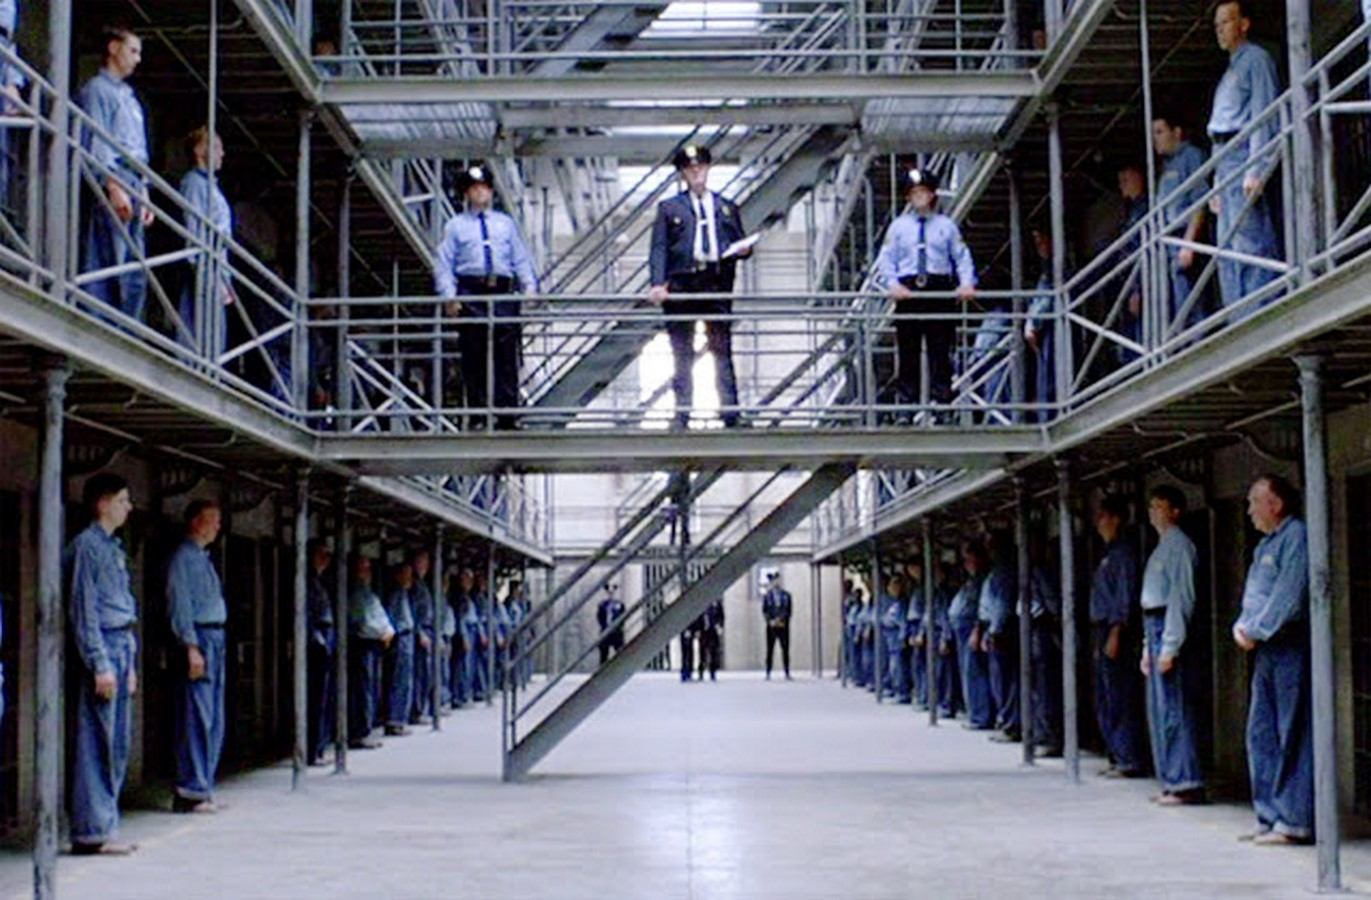 An architectural Review of The Shawshank Redemption - Sheet3